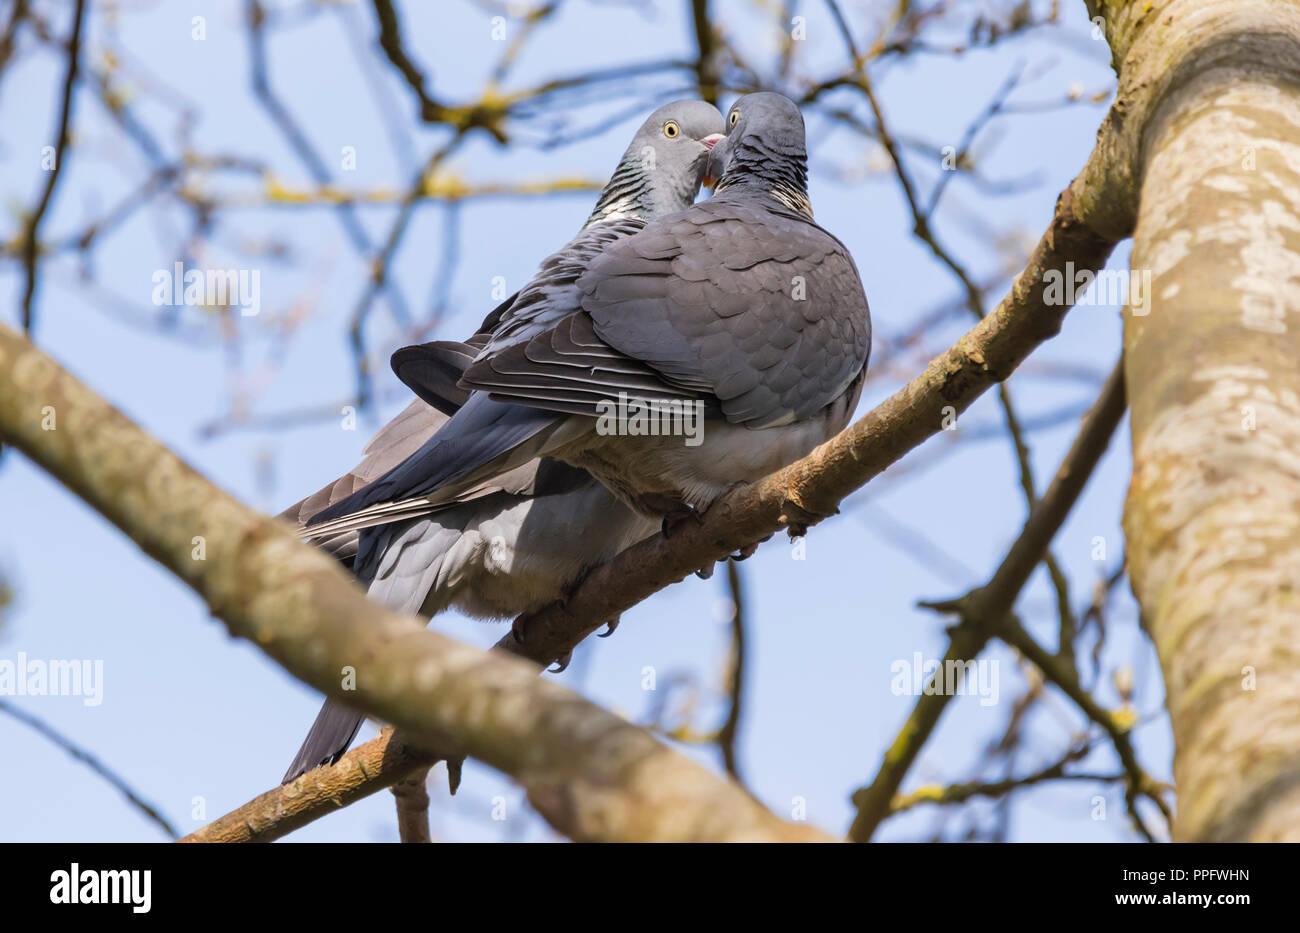 Pair of Woodpigeons (Columba palumbus) perched in a tree courting in Spring in the UK. Wood pigeon courtship display. - Stock Image